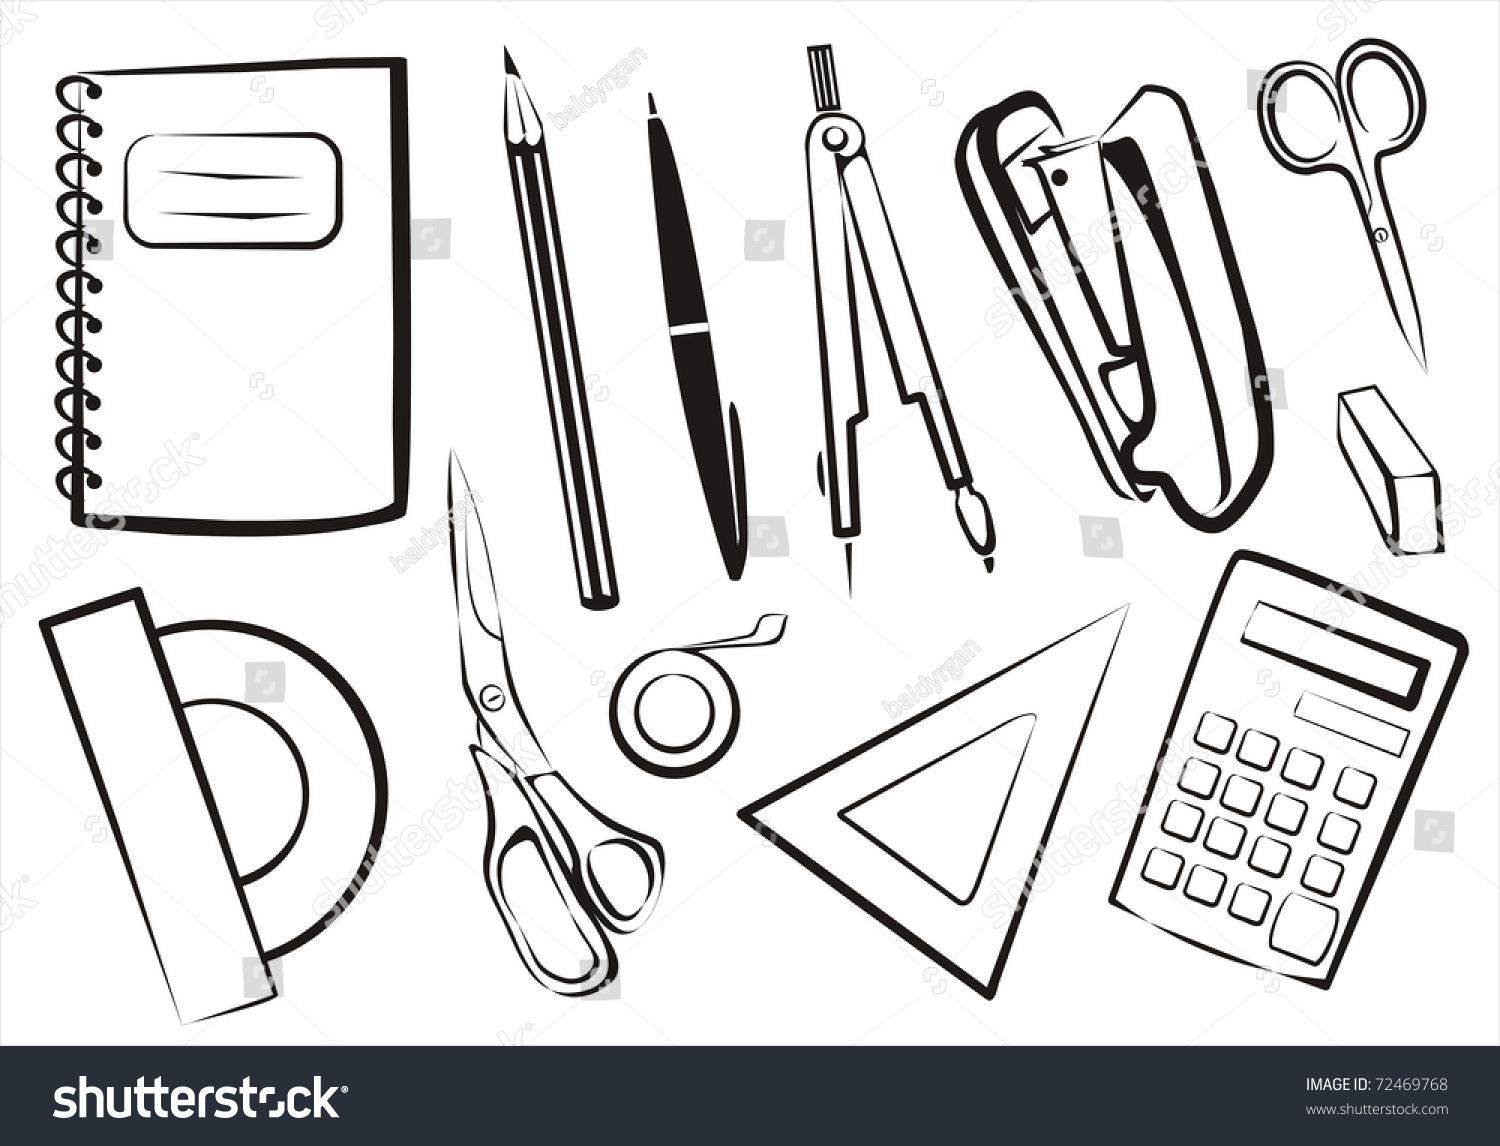 Stationery, School Goods Set Of Isolated Equipment Stock ...